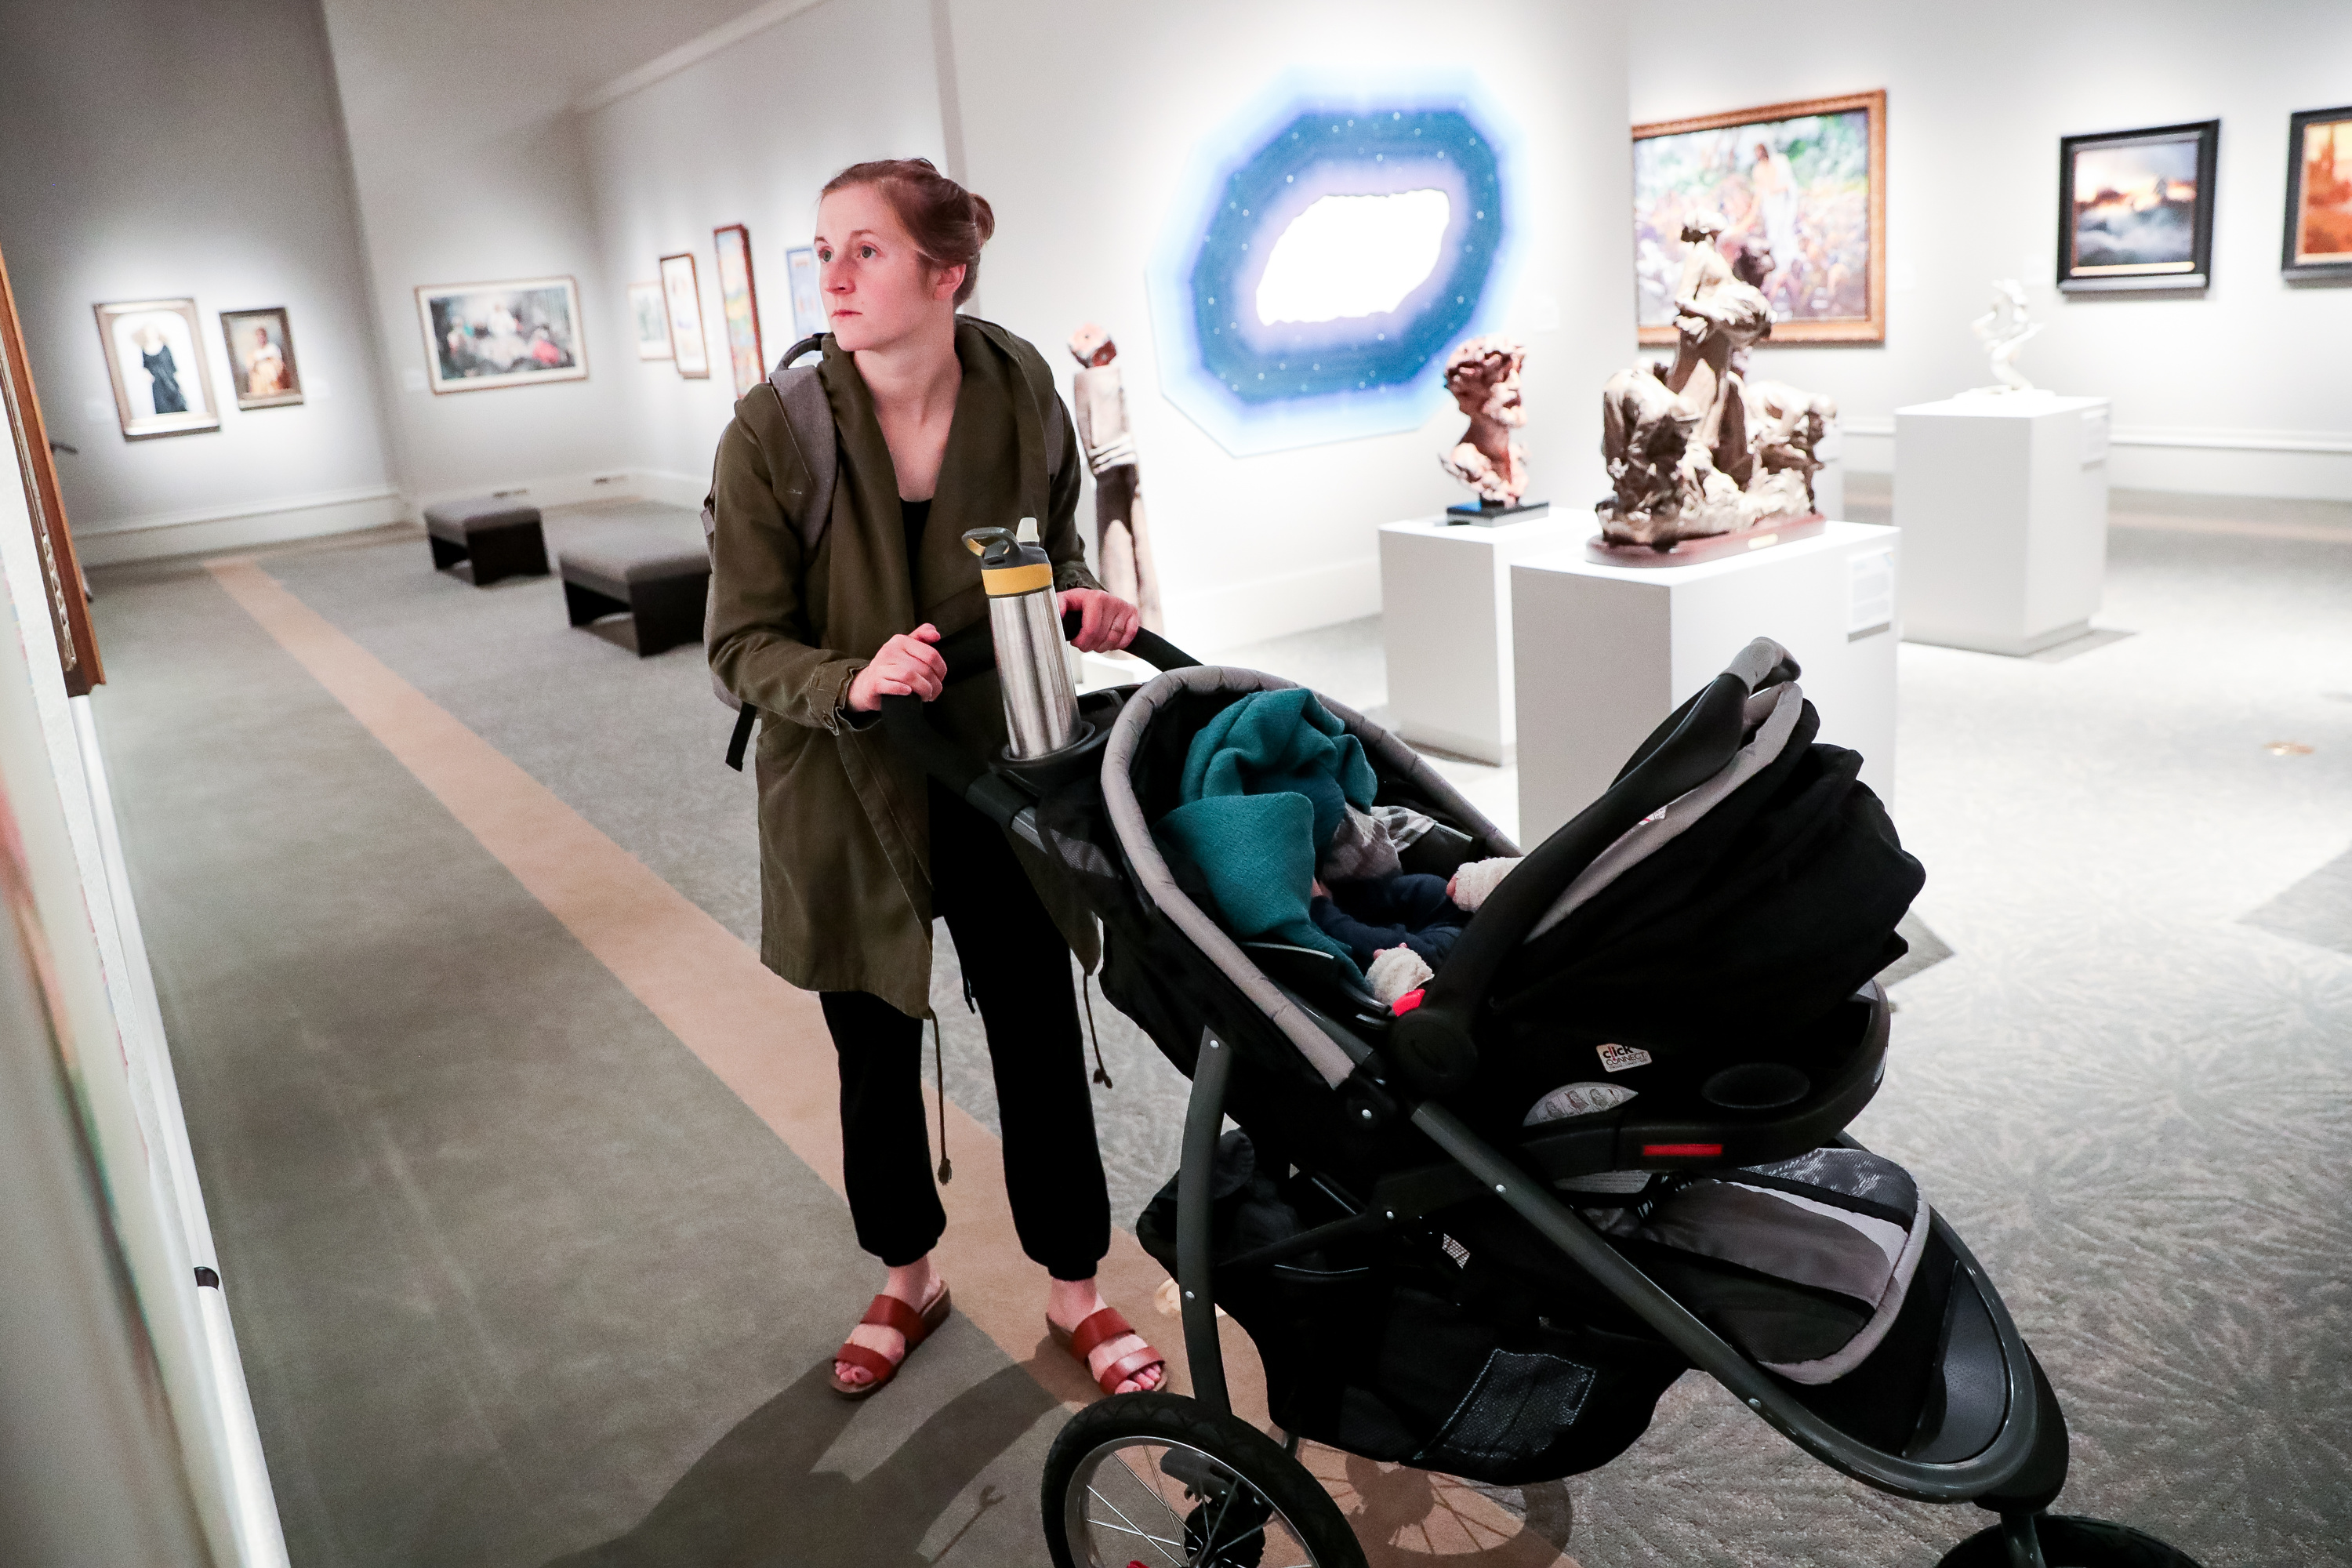 """Sarah Anne Winegar, of Springville, and her 3-month-old son, Luca, tour the 11th International Art Exhibition at the Church History Museum during a media preview in Salt Lake City on Tuesday, March 12, 2019. Winegar has a relief reduction print titled """"Come Unto Me,"""" included in the exhibit."""